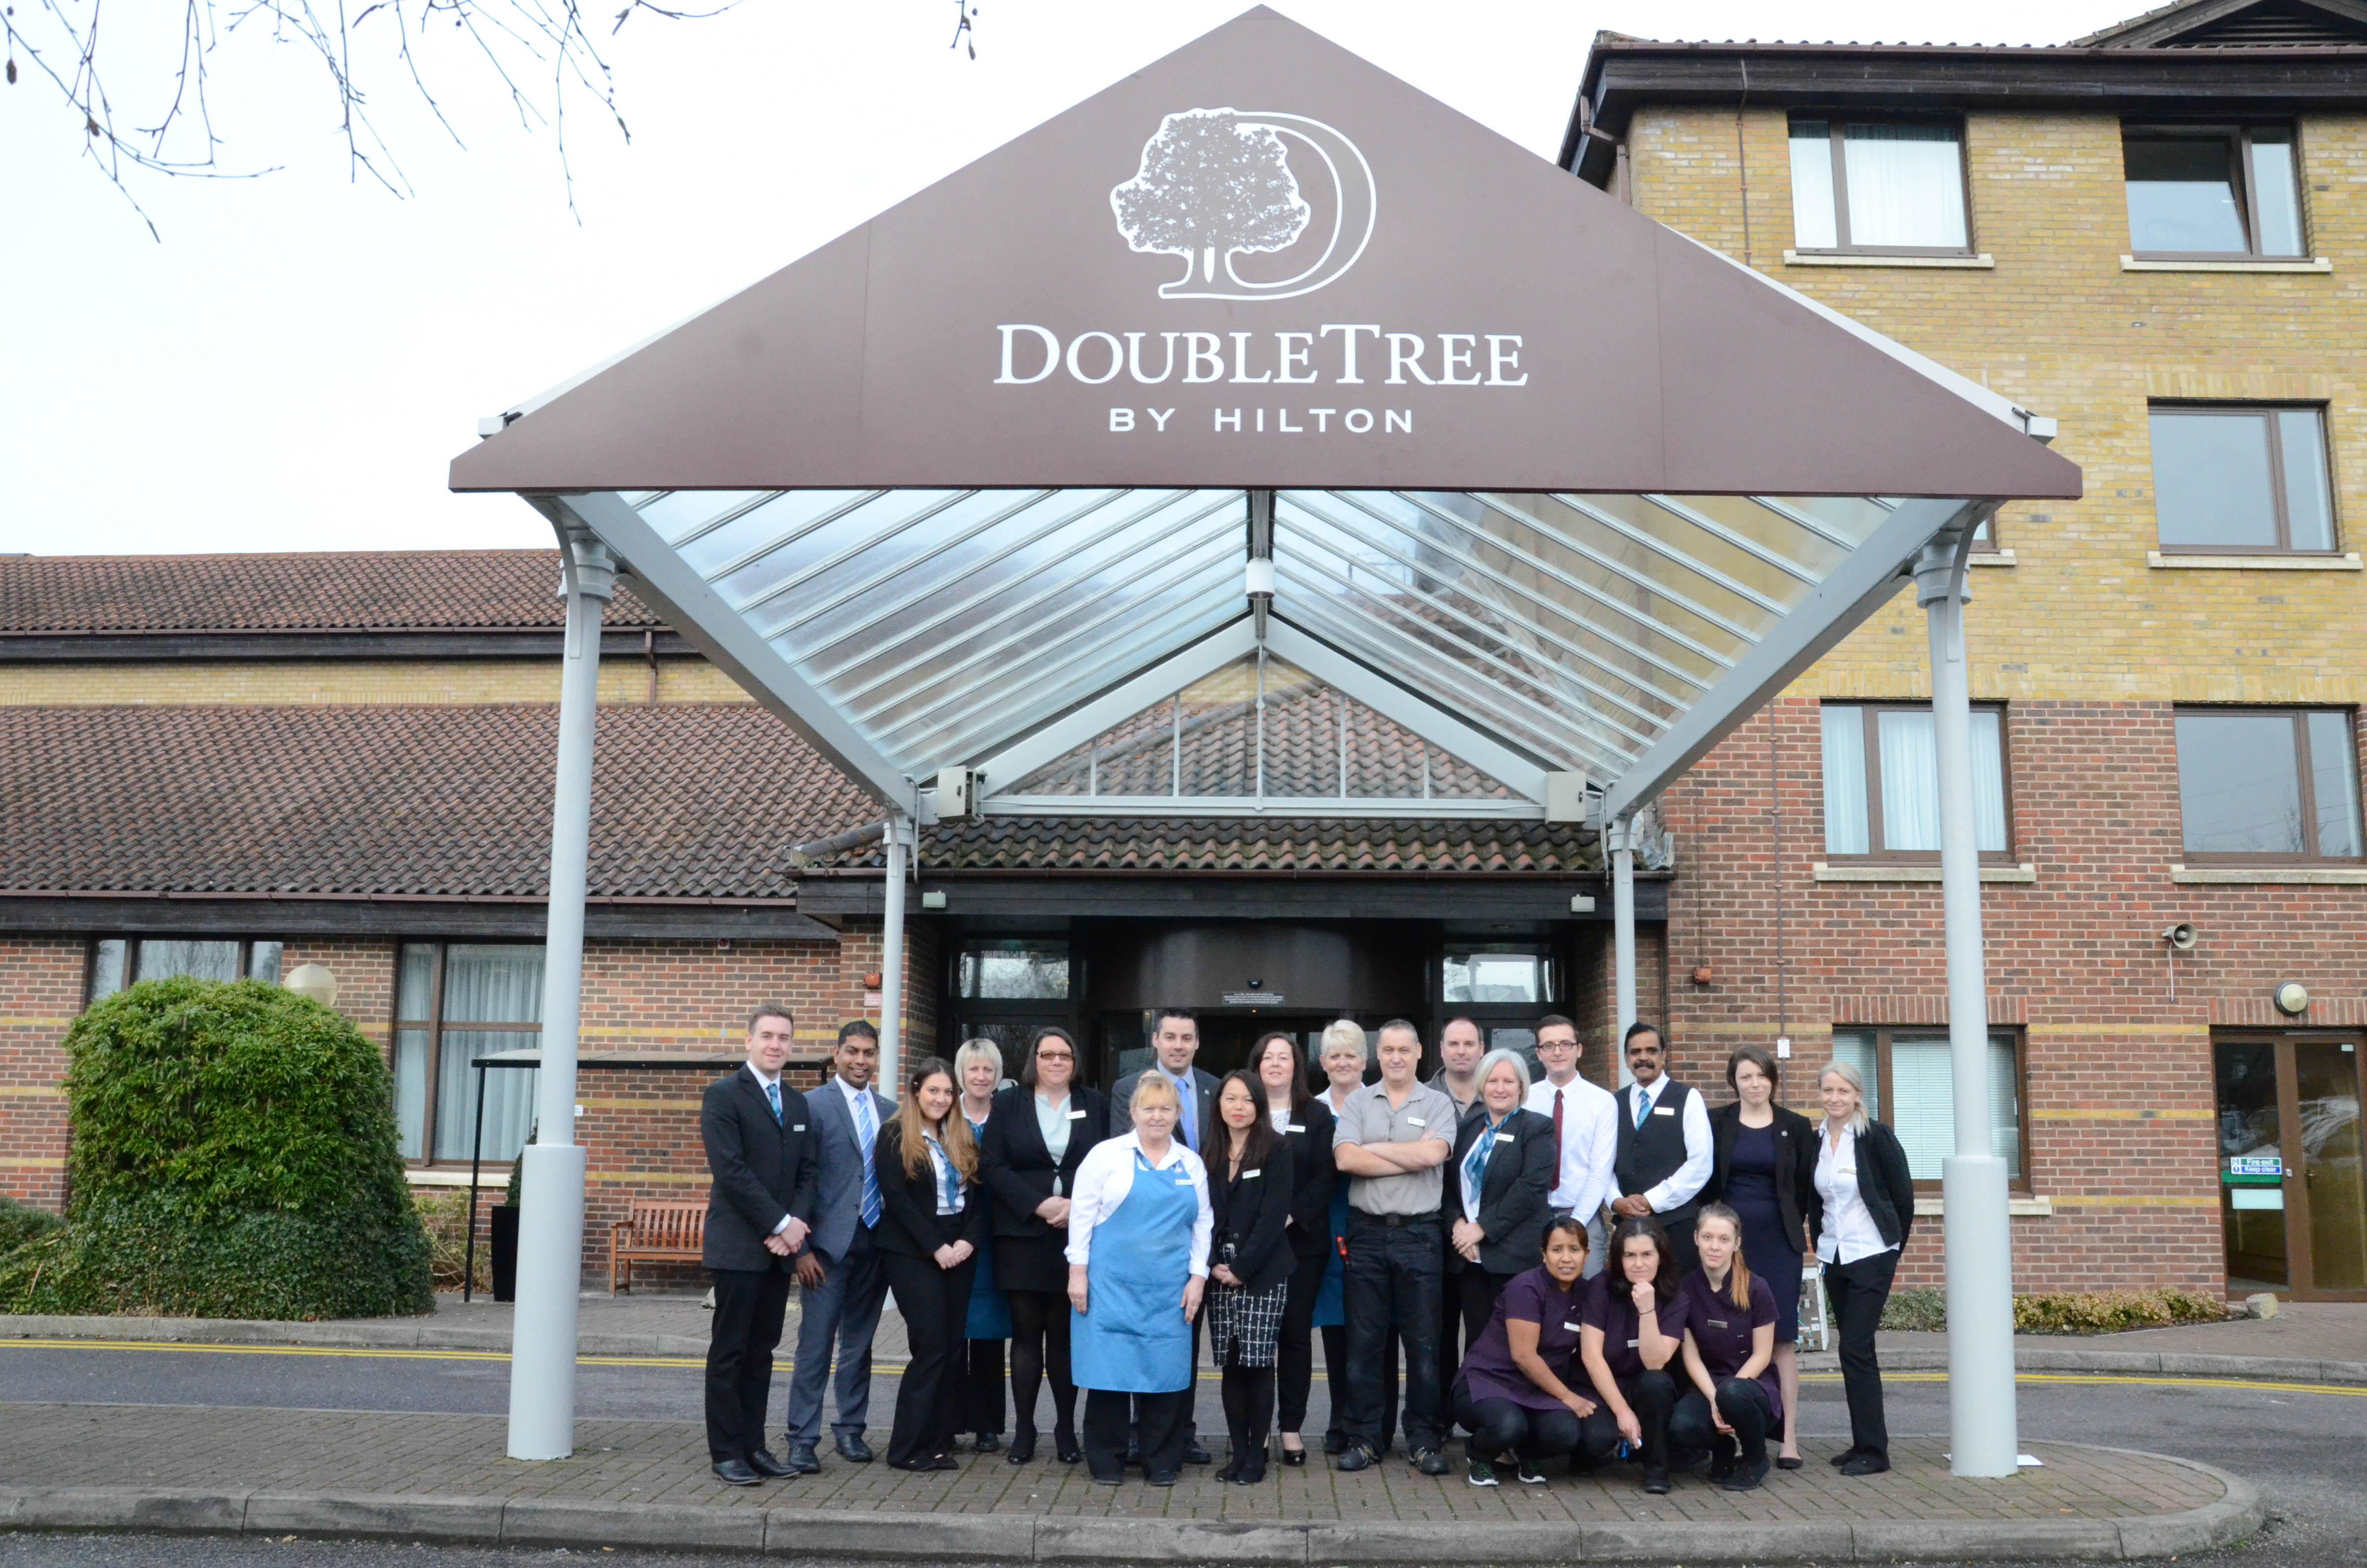 swindon welcomes renovated doubletree by hilton hotel in. Black Bedroom Furniture Sets. Home Design Ideas